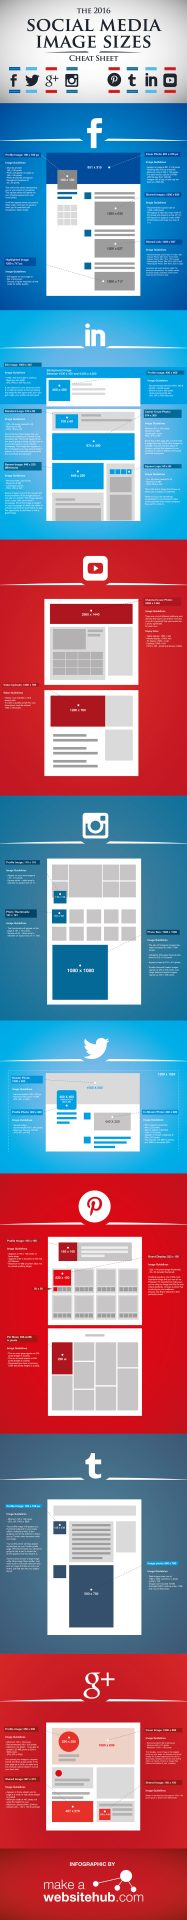 Social Media Image Size Guide 2016